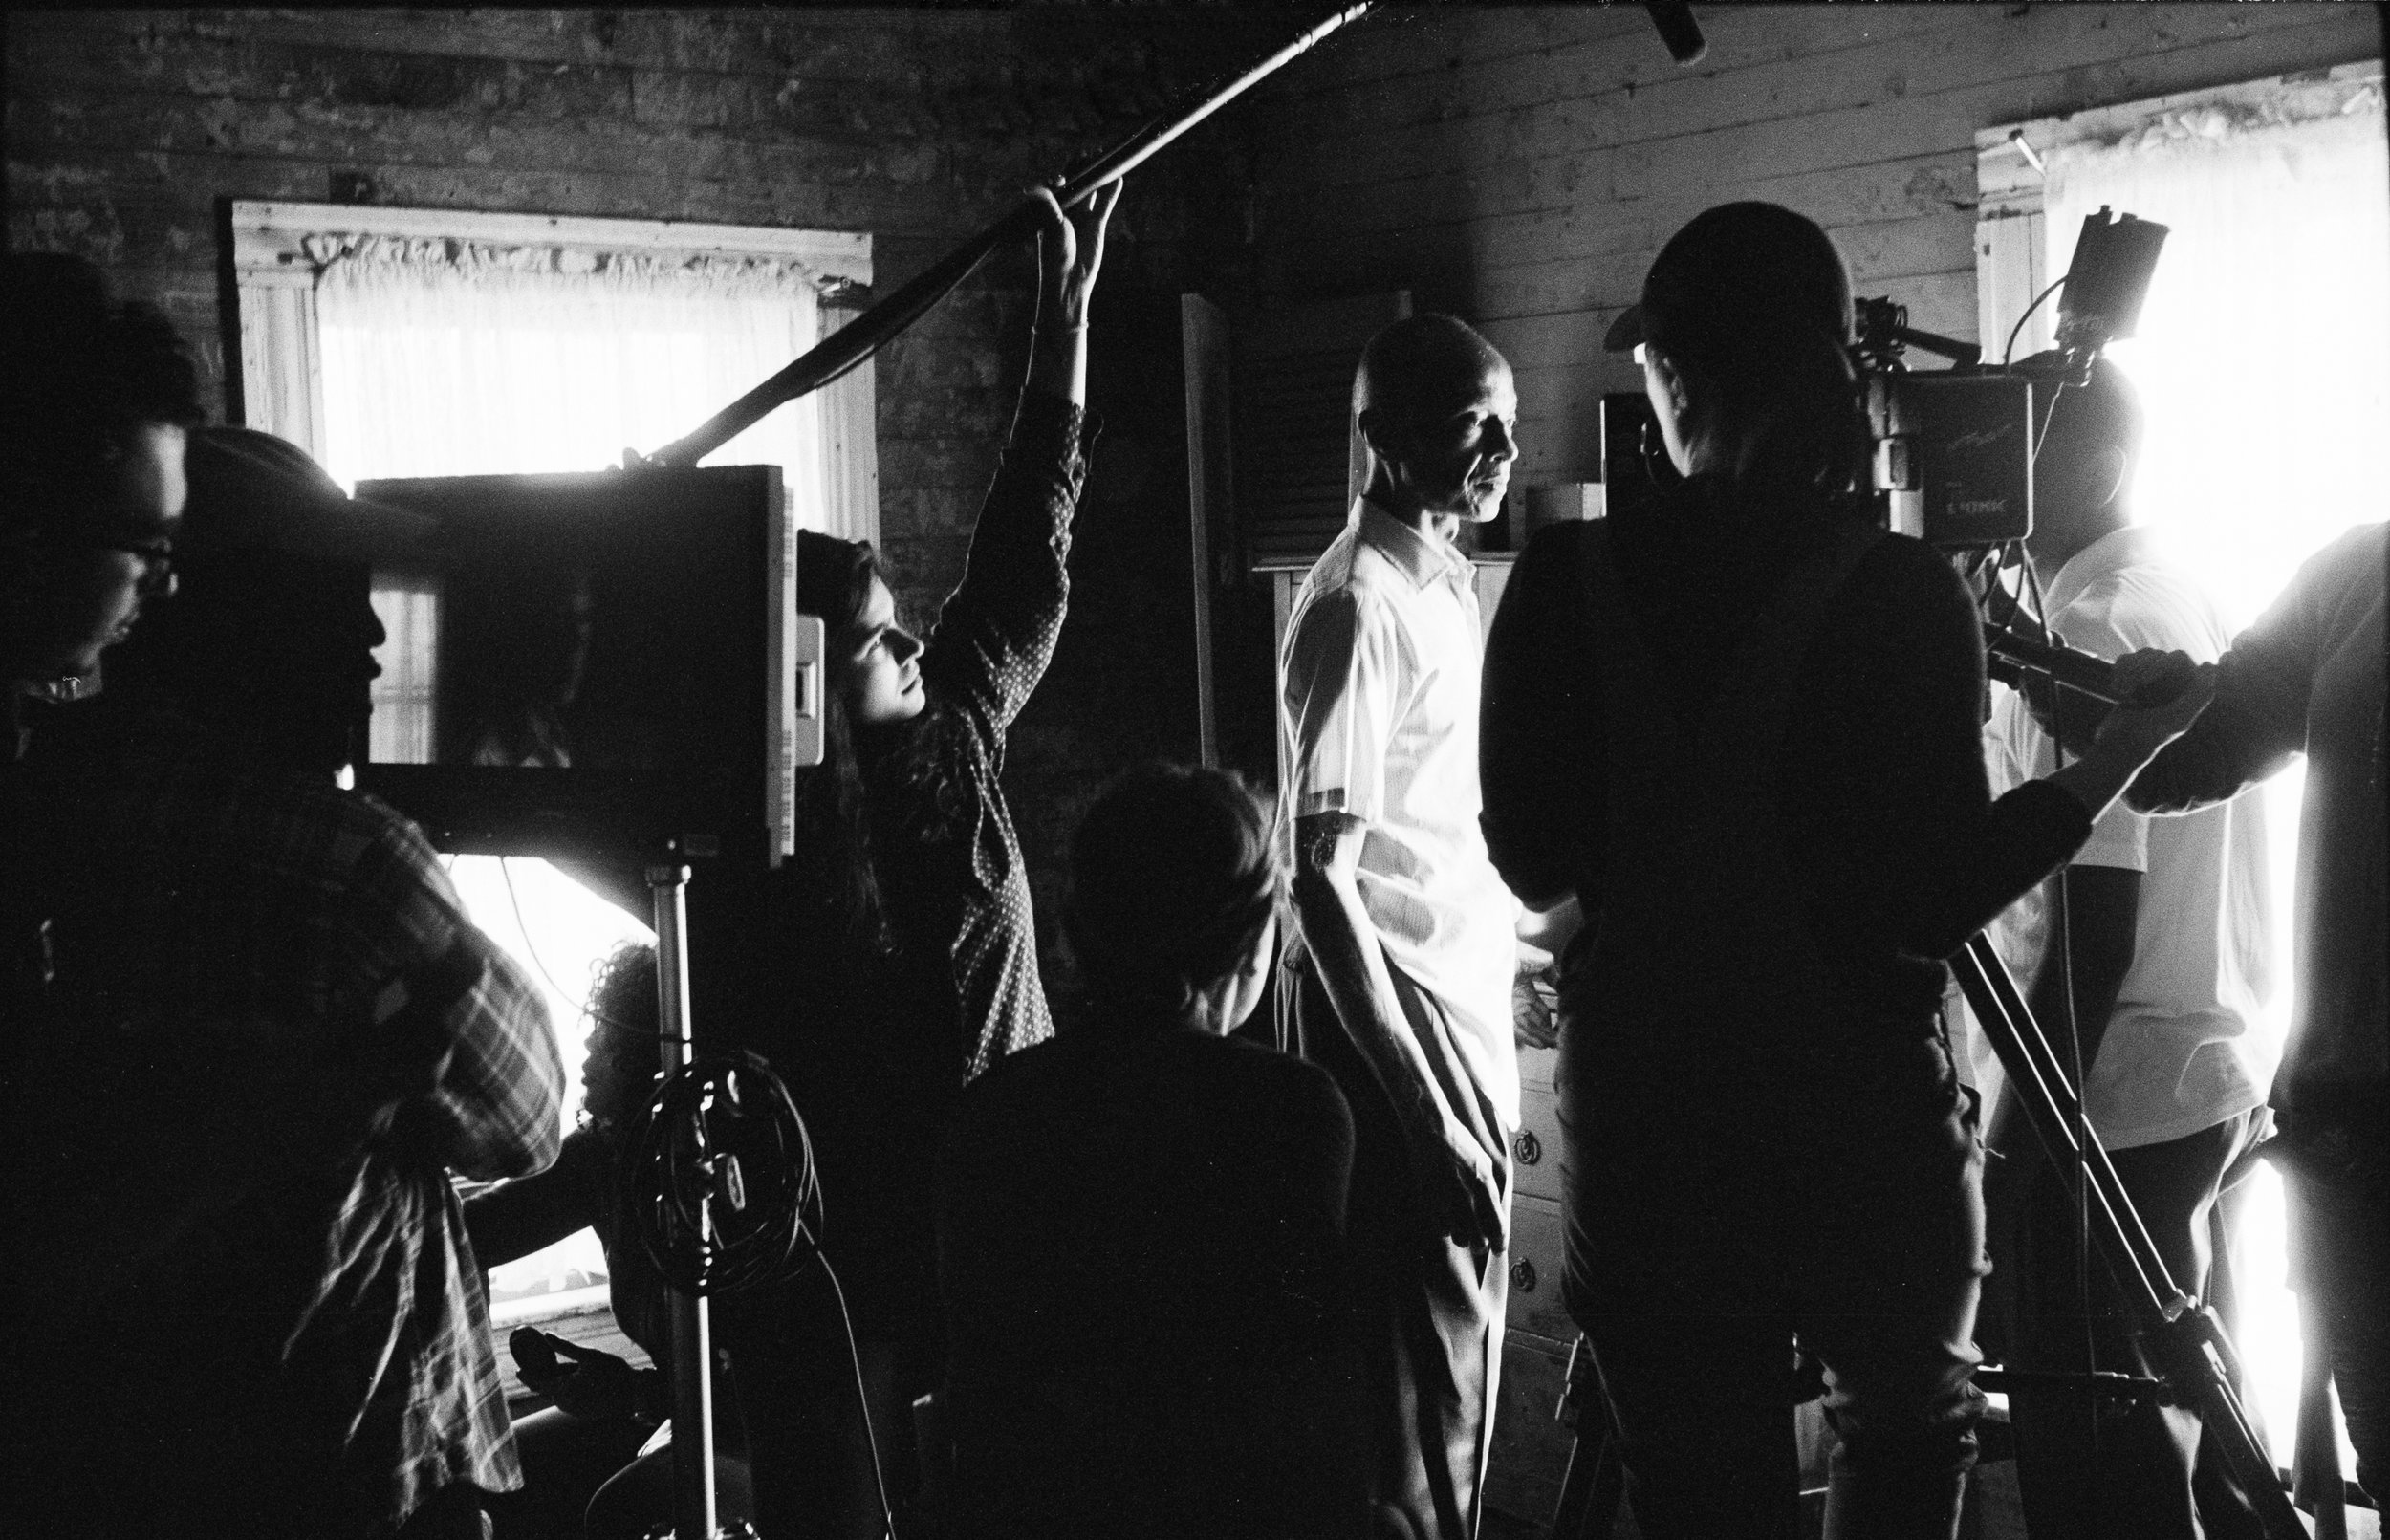 """From L to R: gaffer Seth, writer/director Kevin, hair/make-up artist Tyneshia, sound mixer Aditi, 2nd Ac Kirsten, lead actor L.B., DP Laura, actor Joshua Wright, and 1st AC Lin Que on the set of """"My Nephew Emmett""""  Kodak Tri-X (35mm)"""